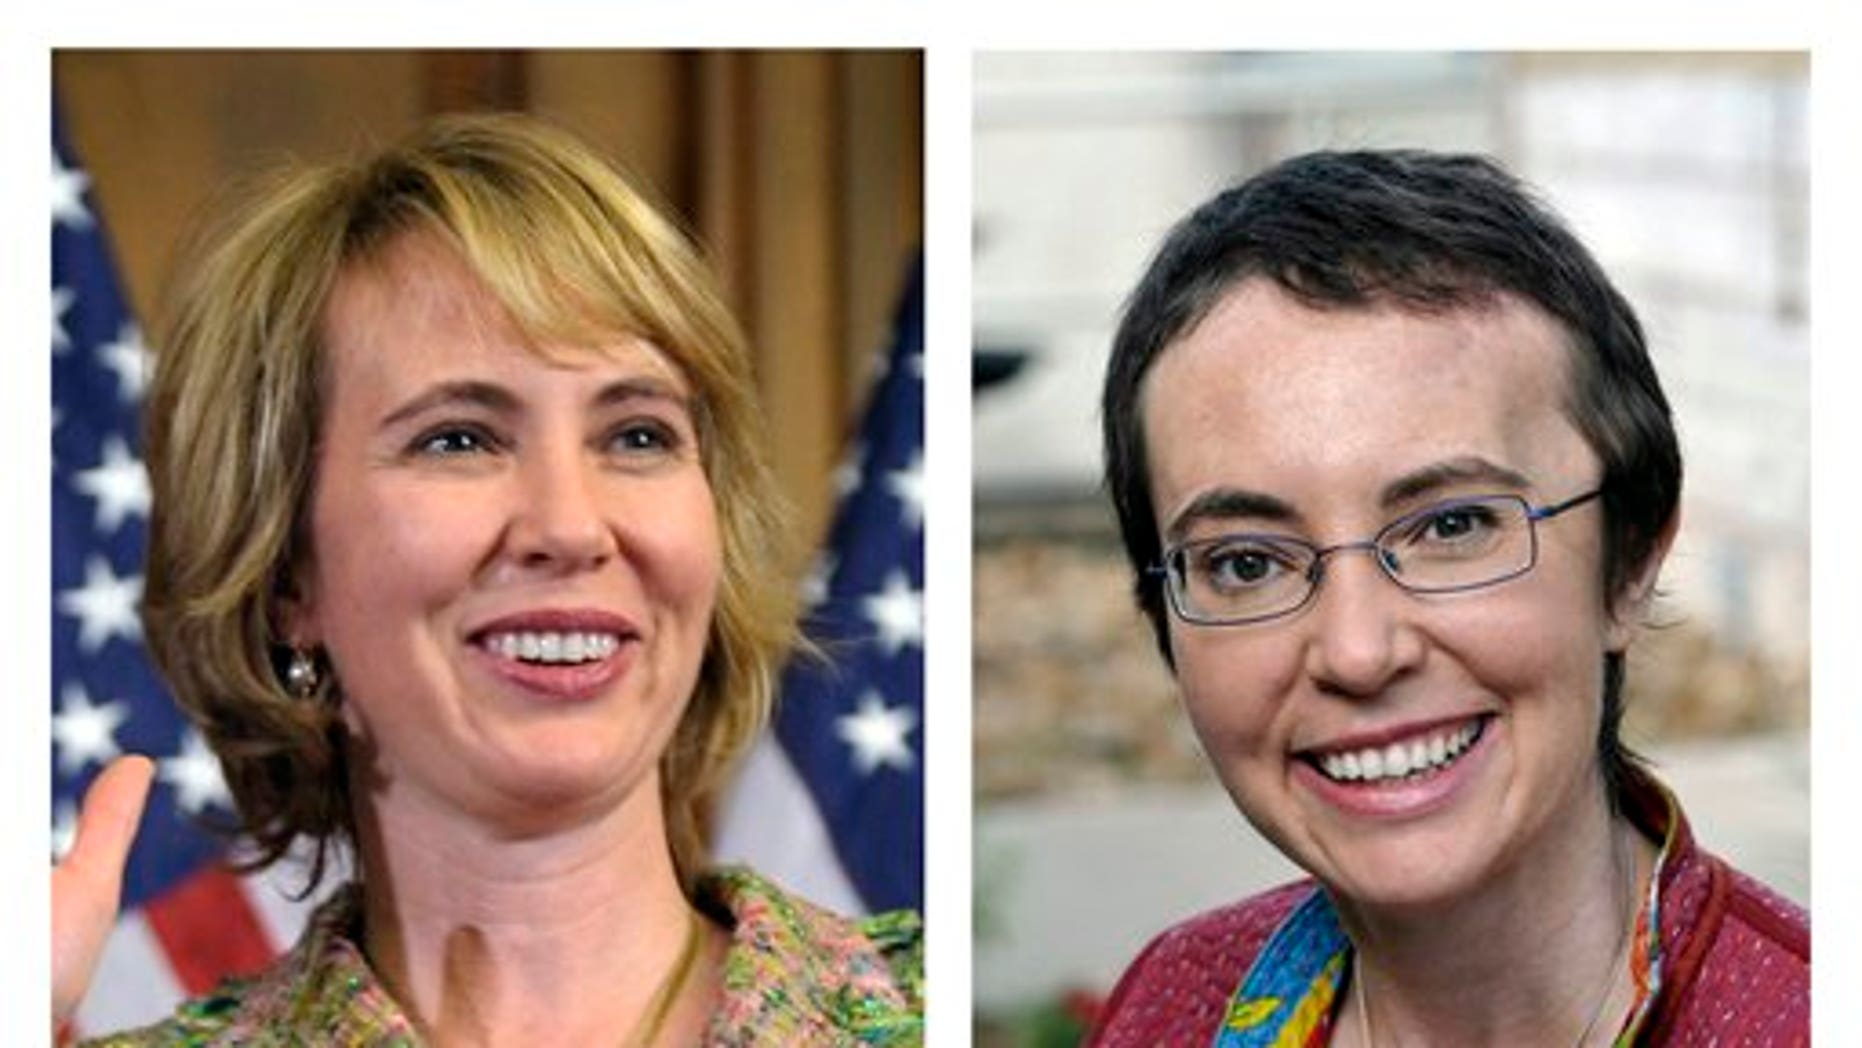 This photo combo shows U.S. Rep. Gabrielle Giffords, D-Ariz. At left, Giffords takes part in a reenactment of her swearing-in on Capitol Hill in Washington, on Jan. 5, 2011, three days before she was shot as she met with constituents in Tucson, Ariz. At right, Giffords is seen May 17, 2011, at TIRR Memorial Hermann Hospital in Houston, the day after the launch of space shuttle Endeavour and the day before she had her cranioplasty. (AP/Susan Walsh/P.K. Weis)